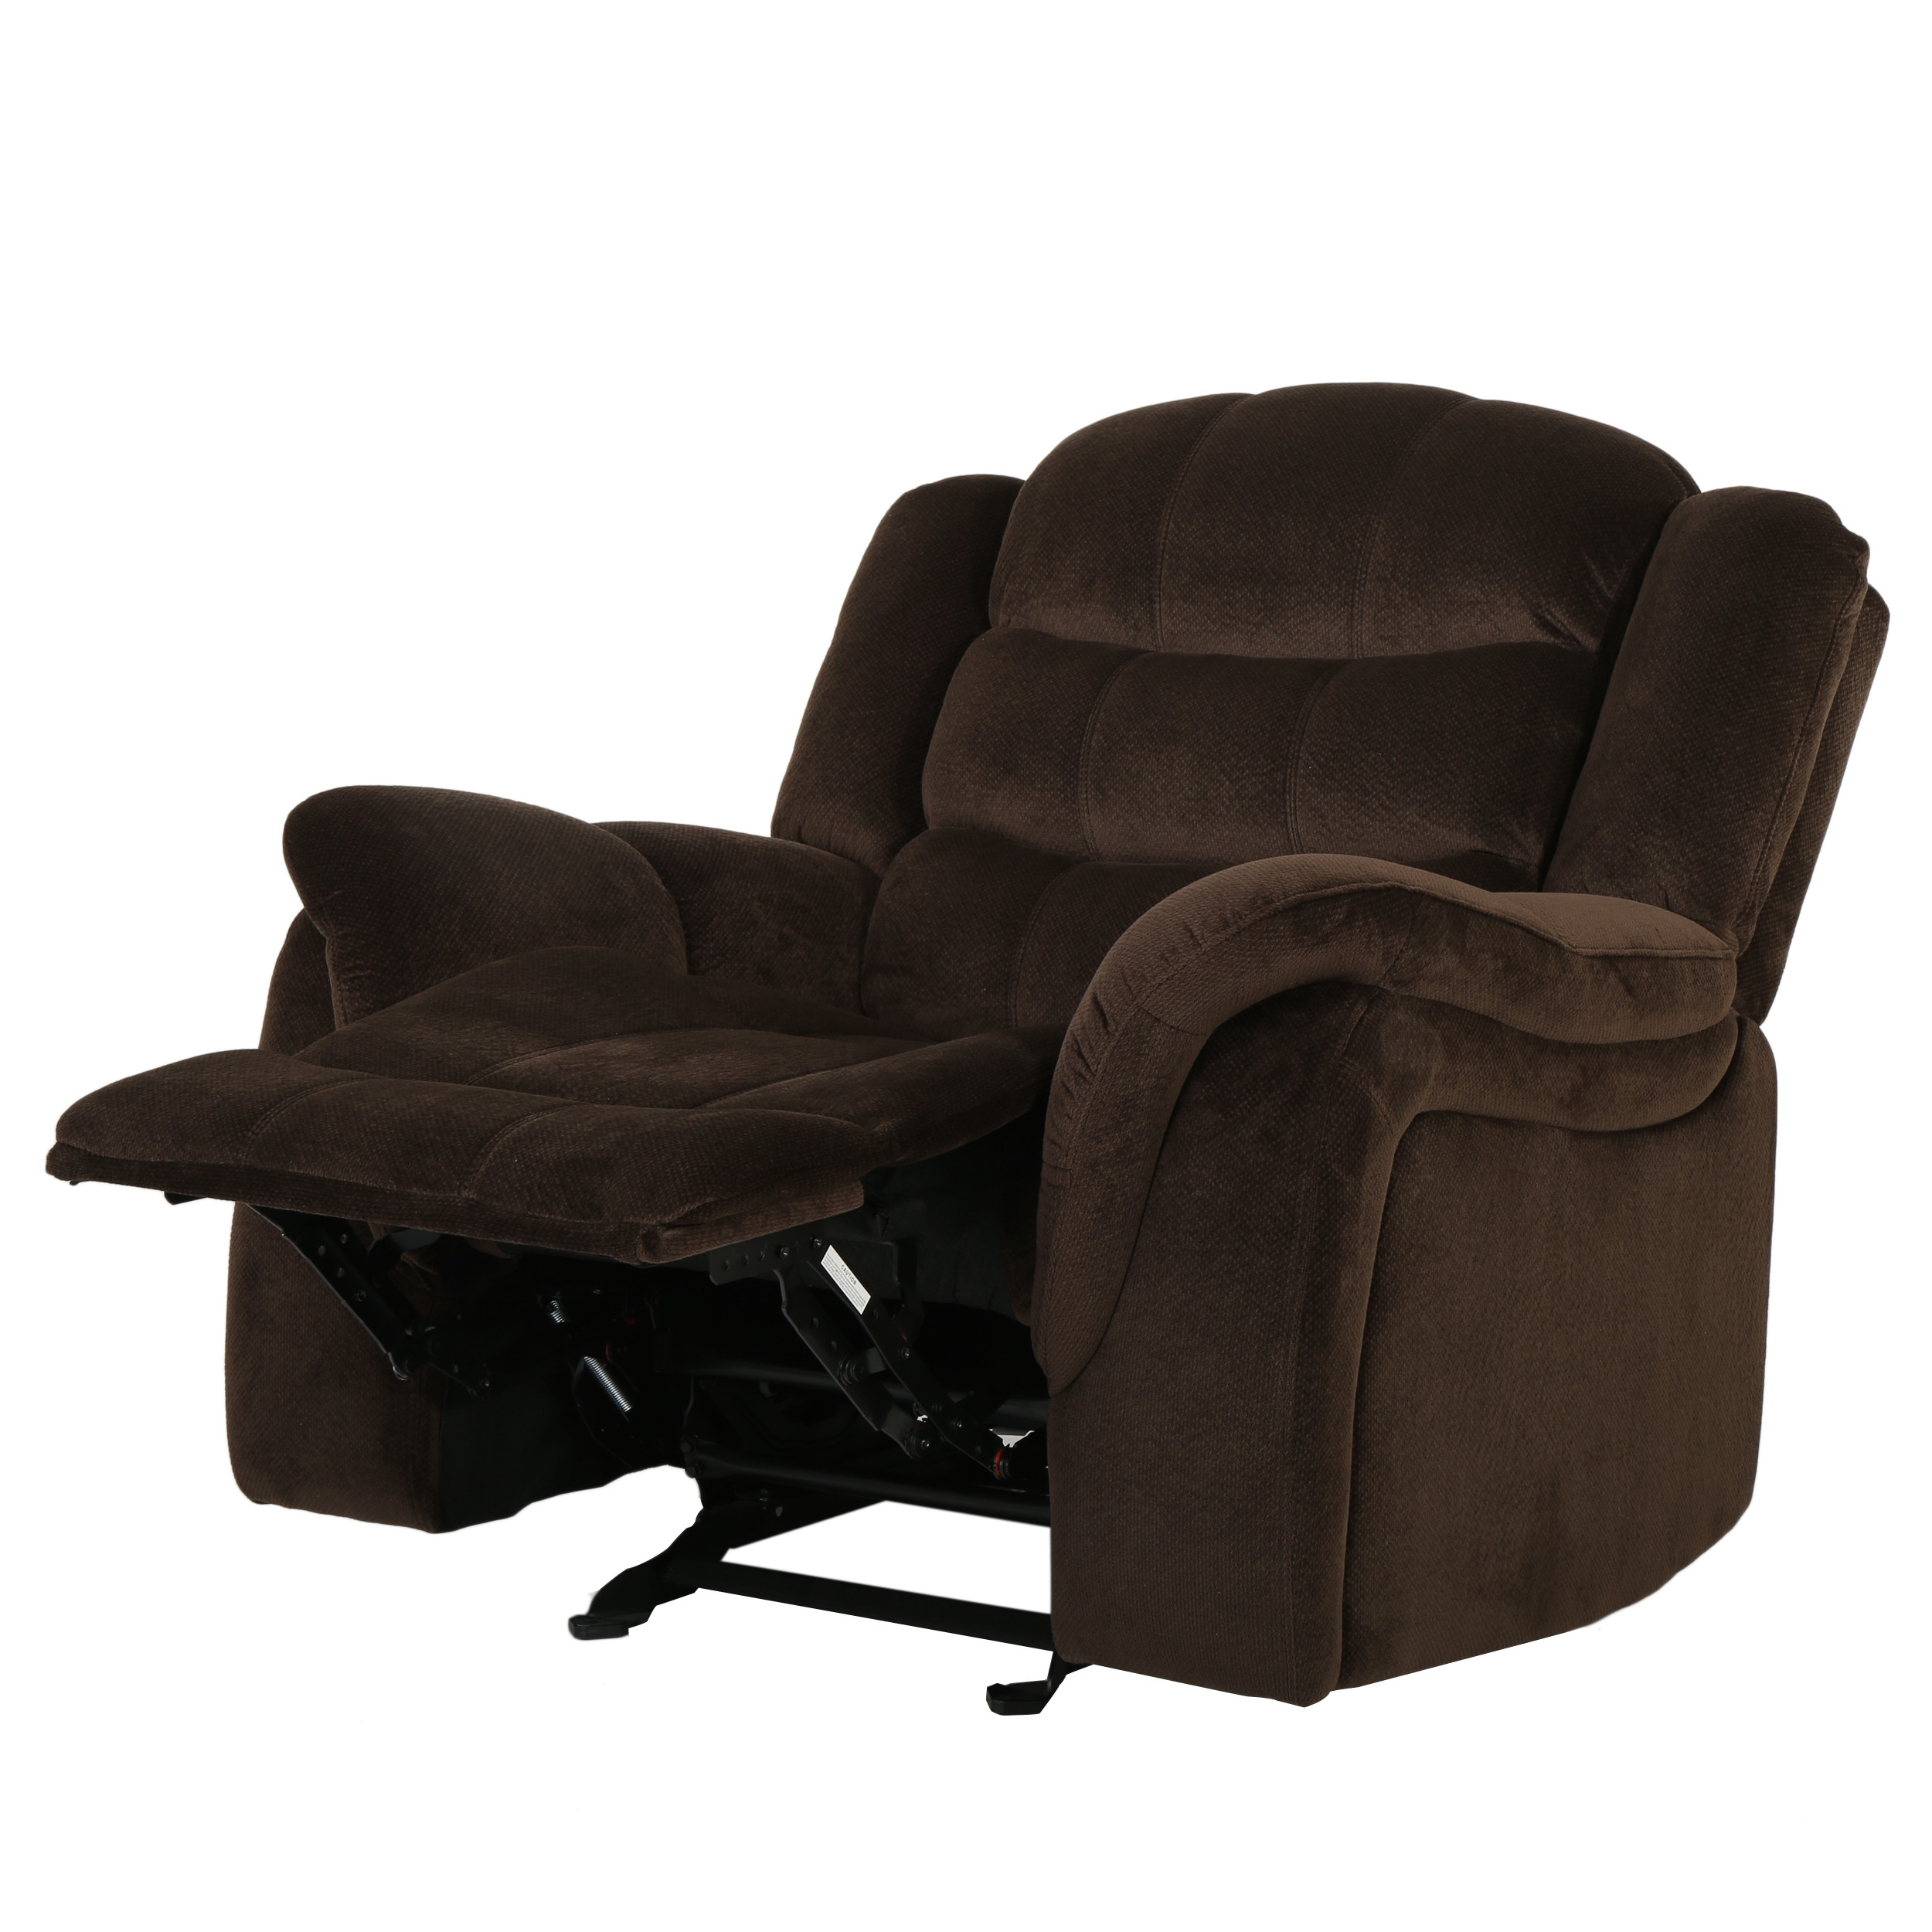 Furniture & Rug Glider Recliner